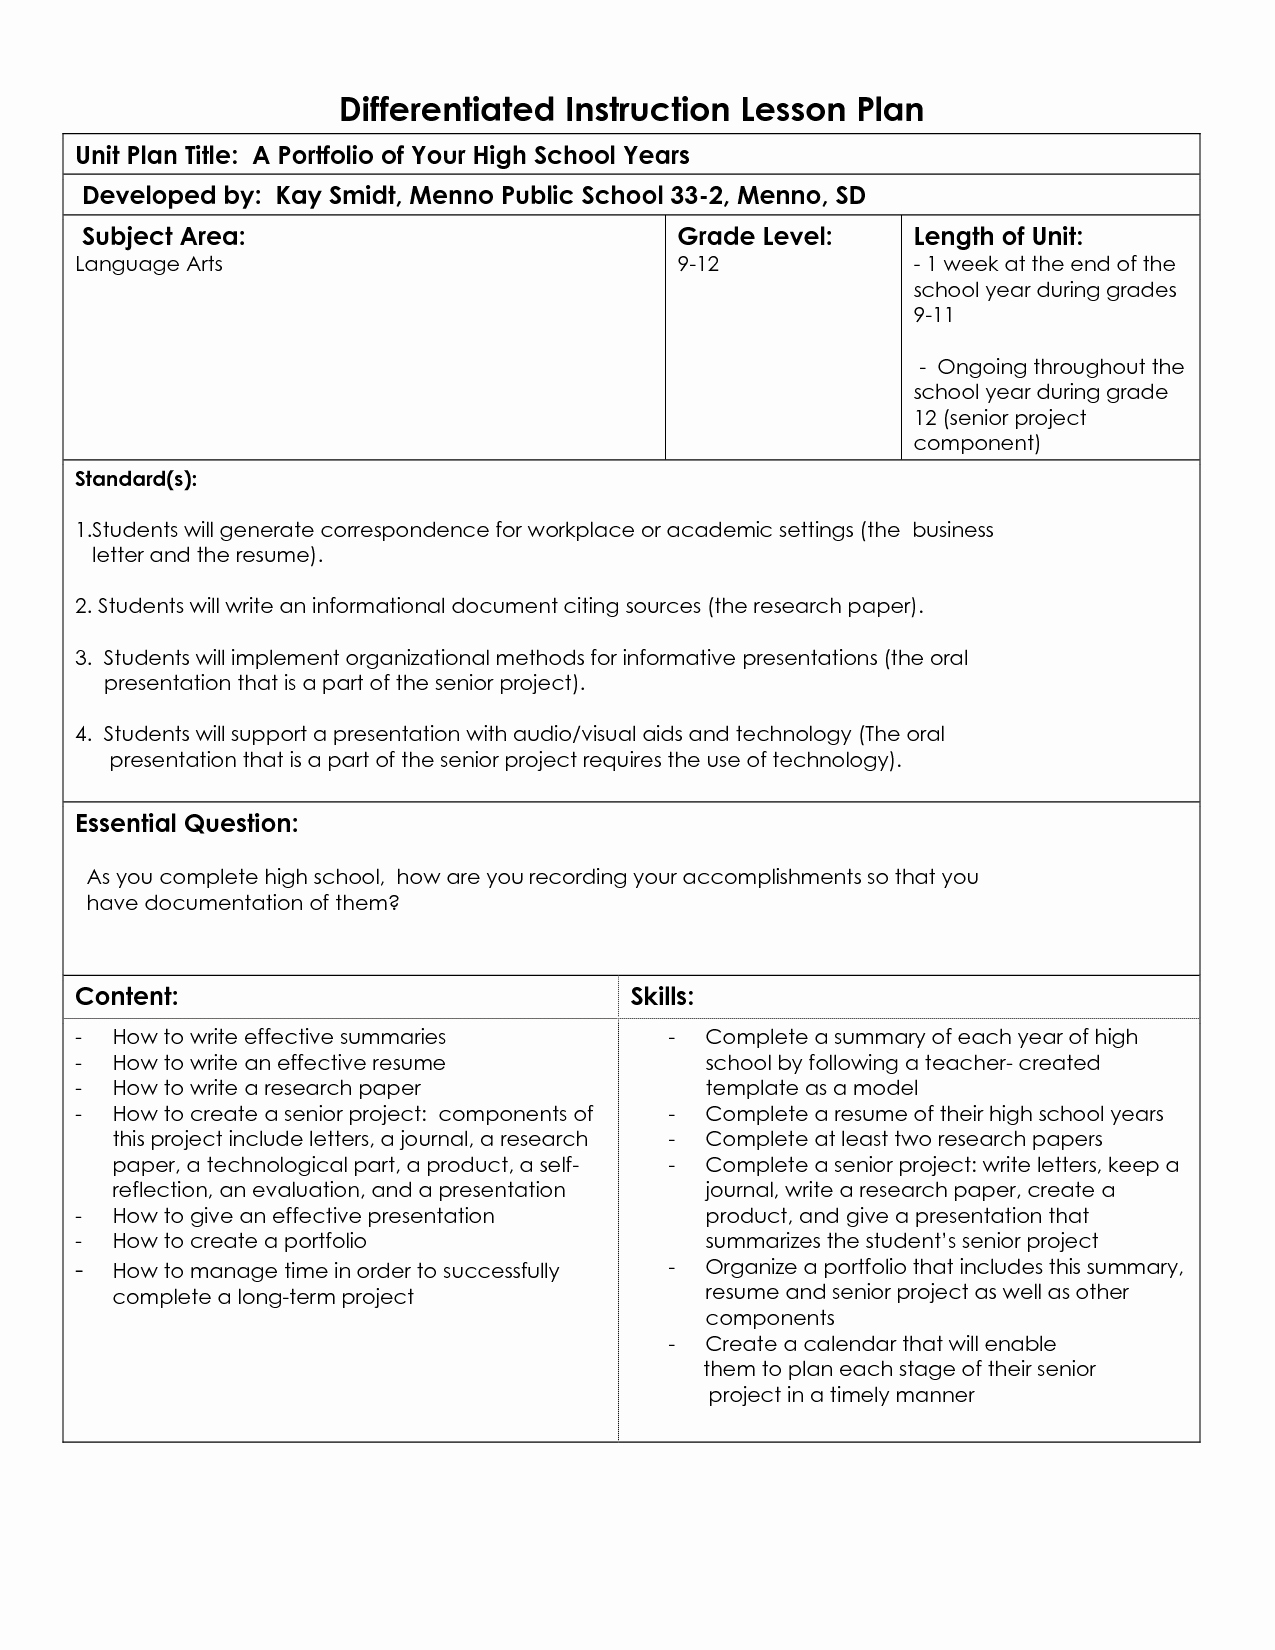 Differentiated Instruction Lesson Plan Template Beautiful Differentiated Instruction Lesson Plan Template 1954